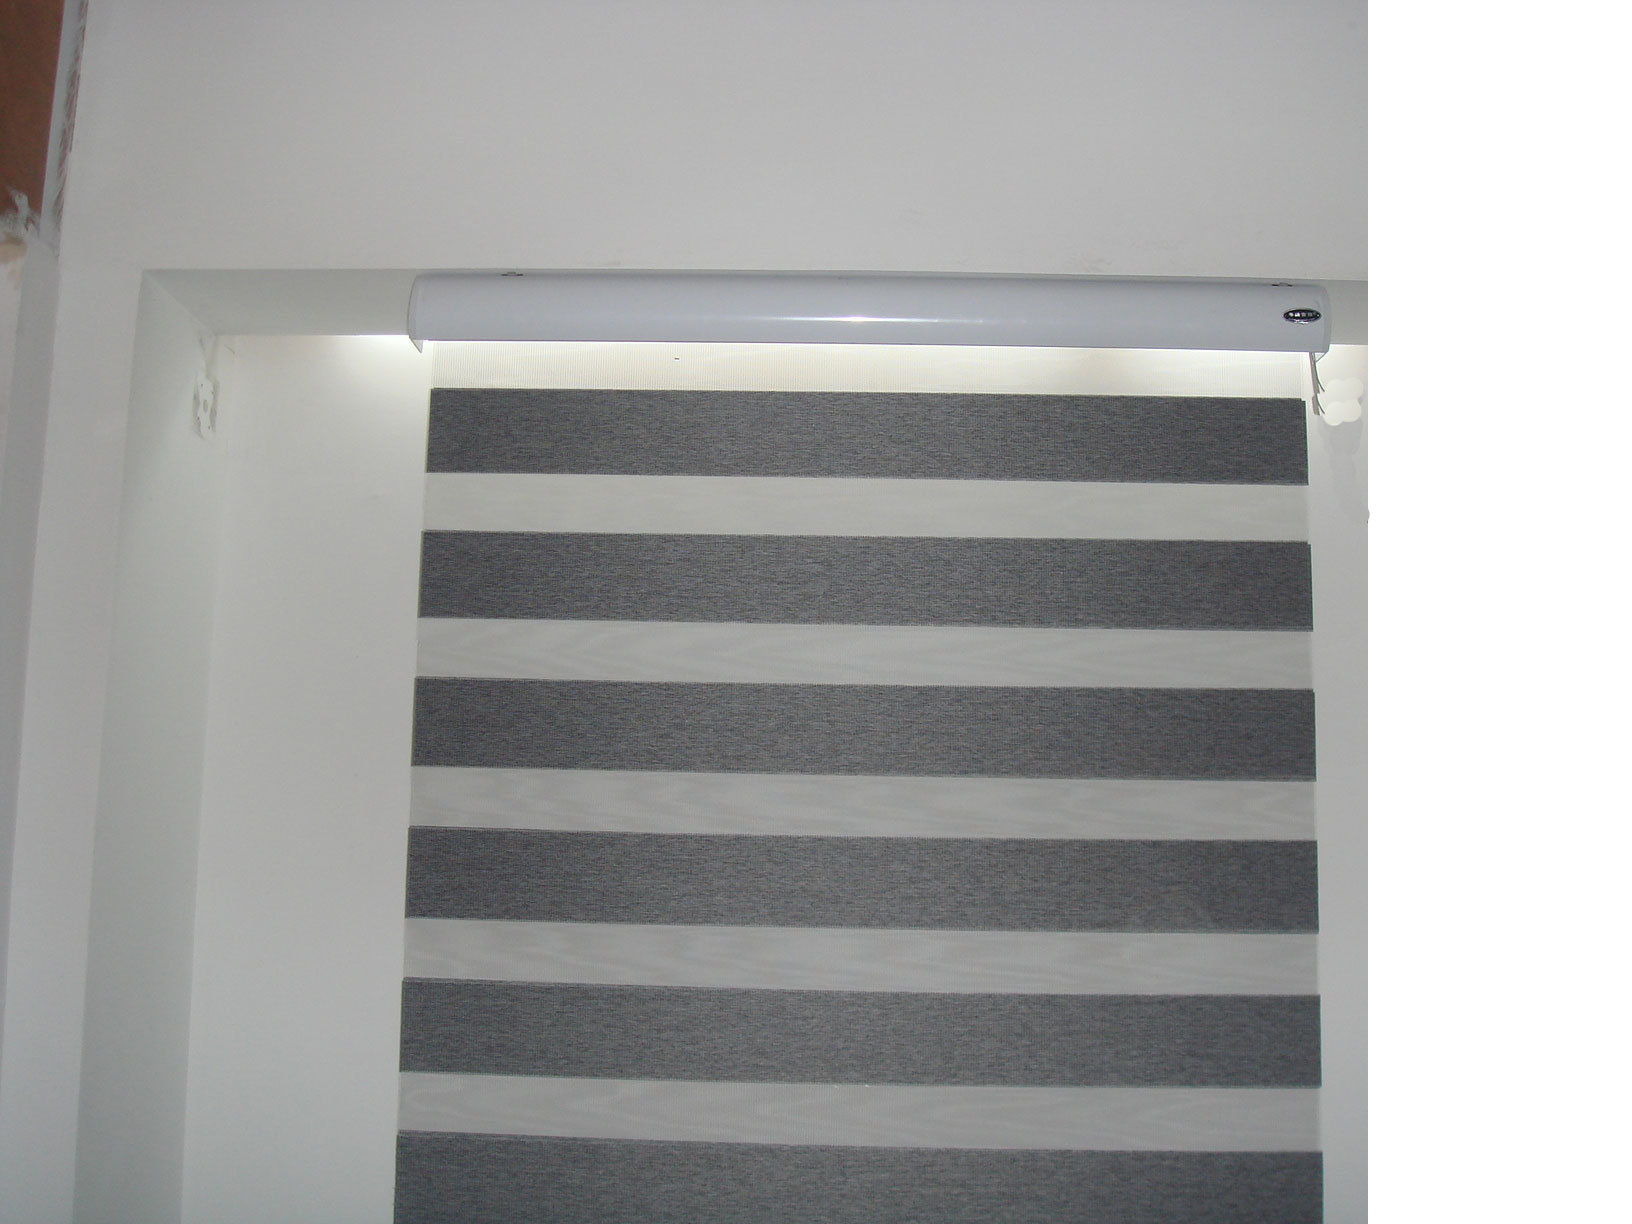 fyxqfijbvavg blackout chain productimage pvc roller manual blinds polyester china blind sunshade